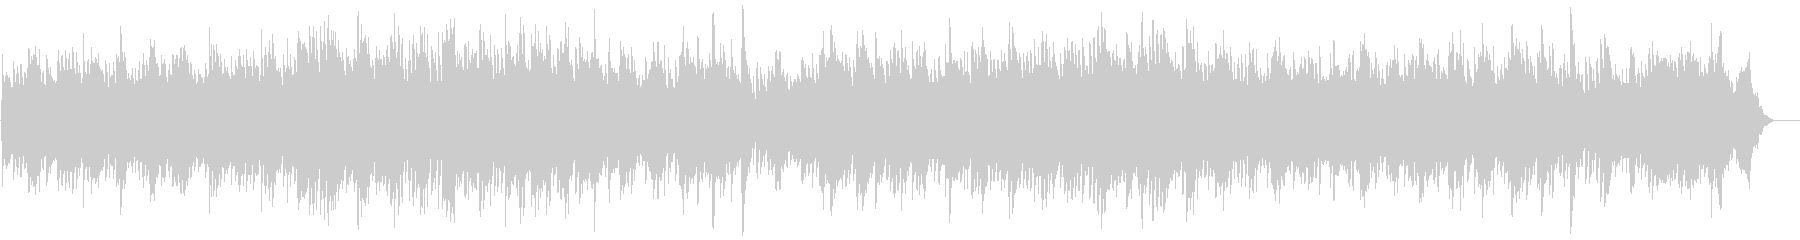 Hey, Detective. I actually saw the crime last night. My husband was...'s unreproduced waveform